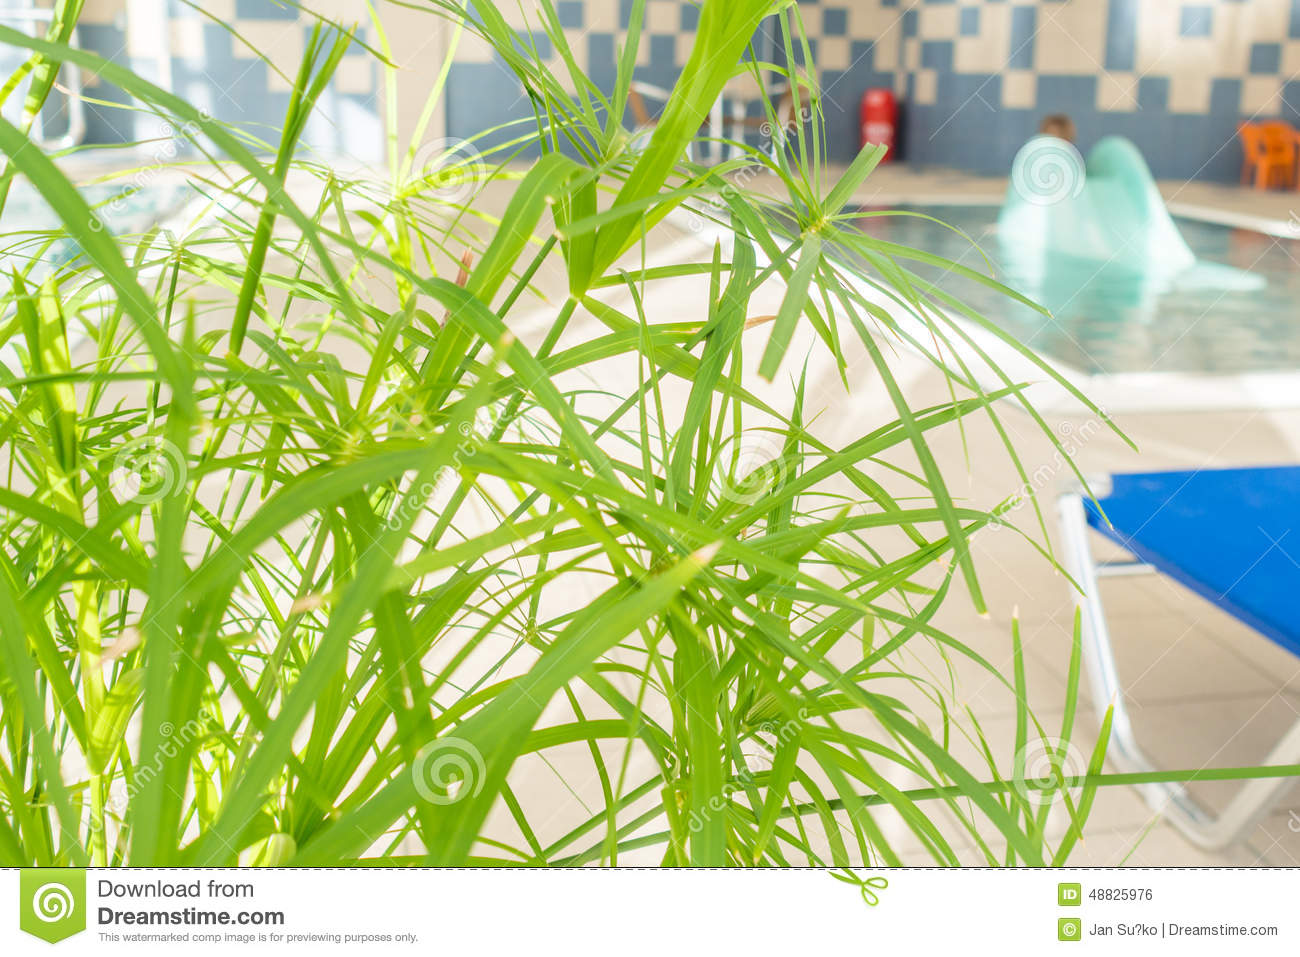 View of indoor baby pool stock photo image of basin for Indoor green plants images